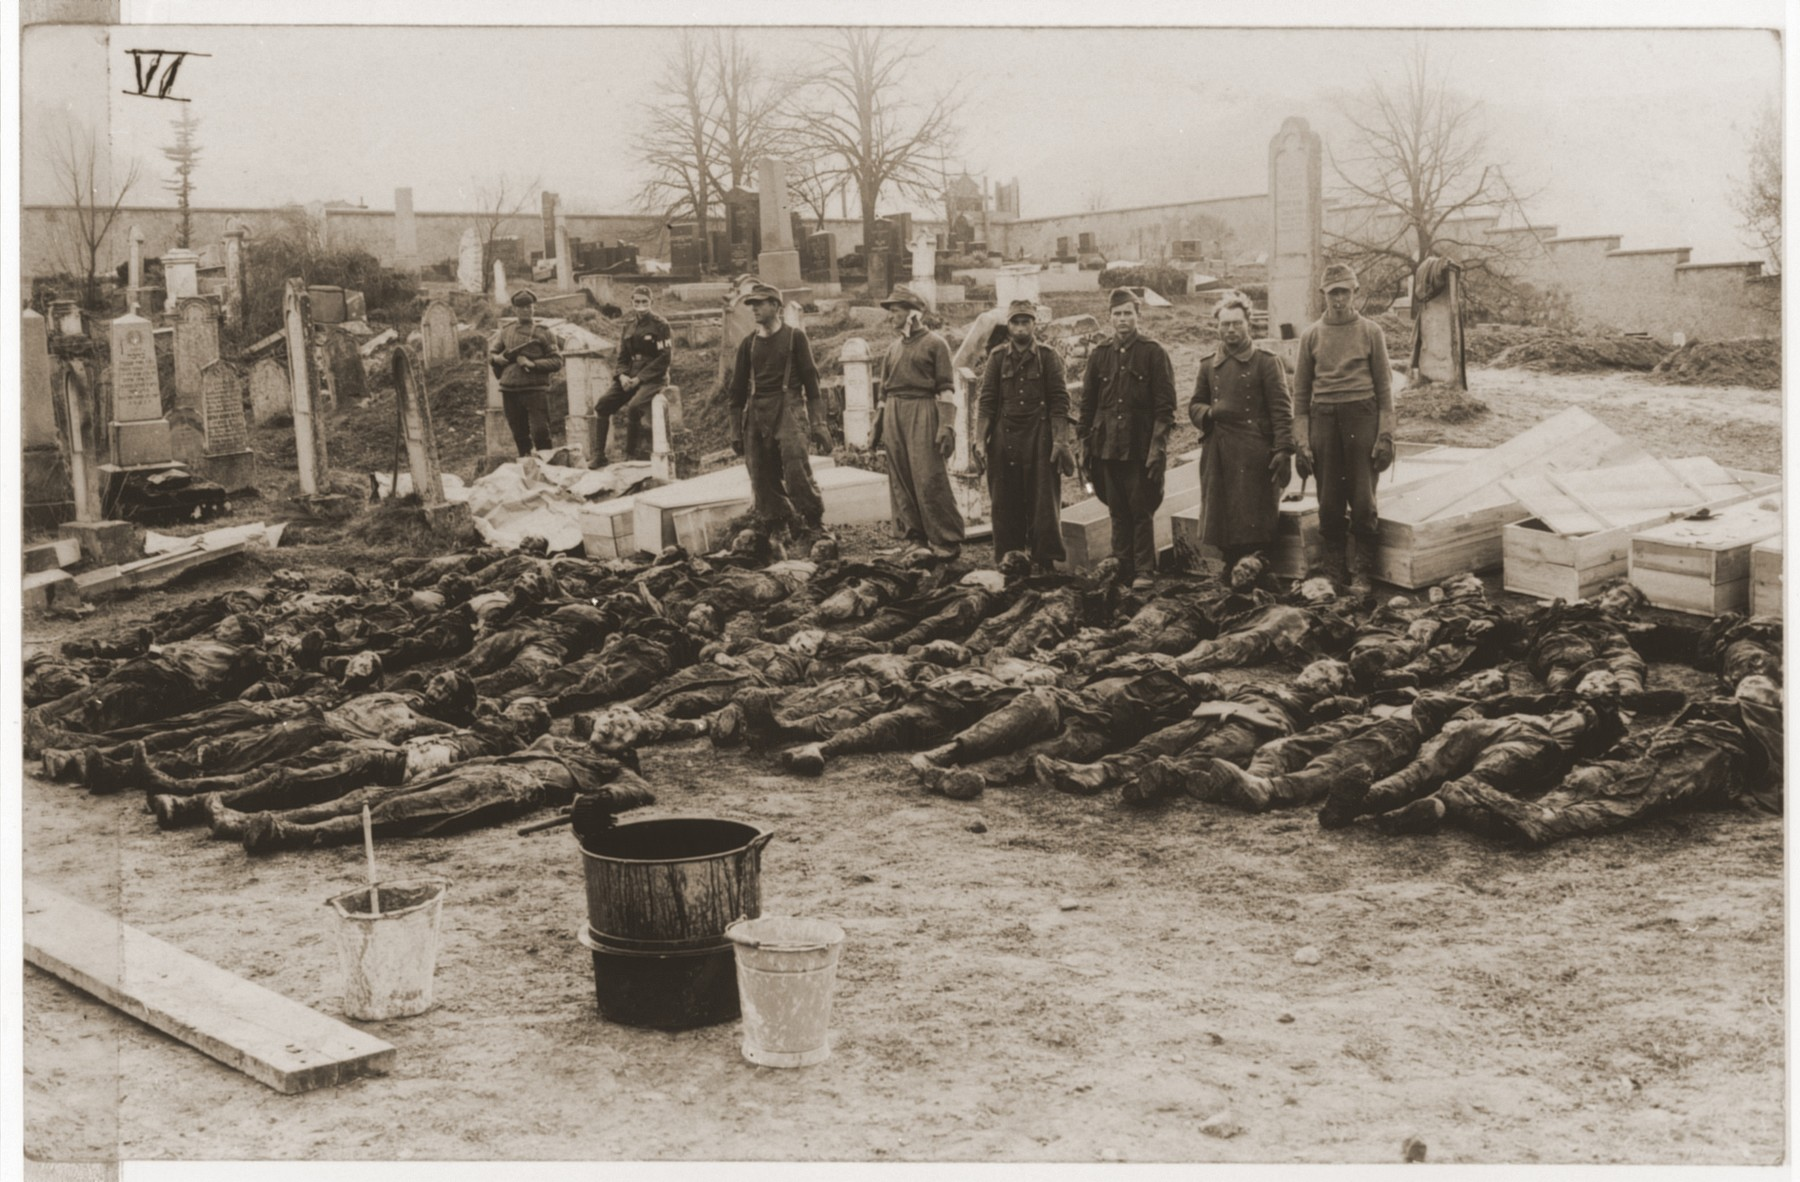 German POW's are forced by Soviet guards to rebury corpses exhumed from a mass grave in Czechoslovakia.